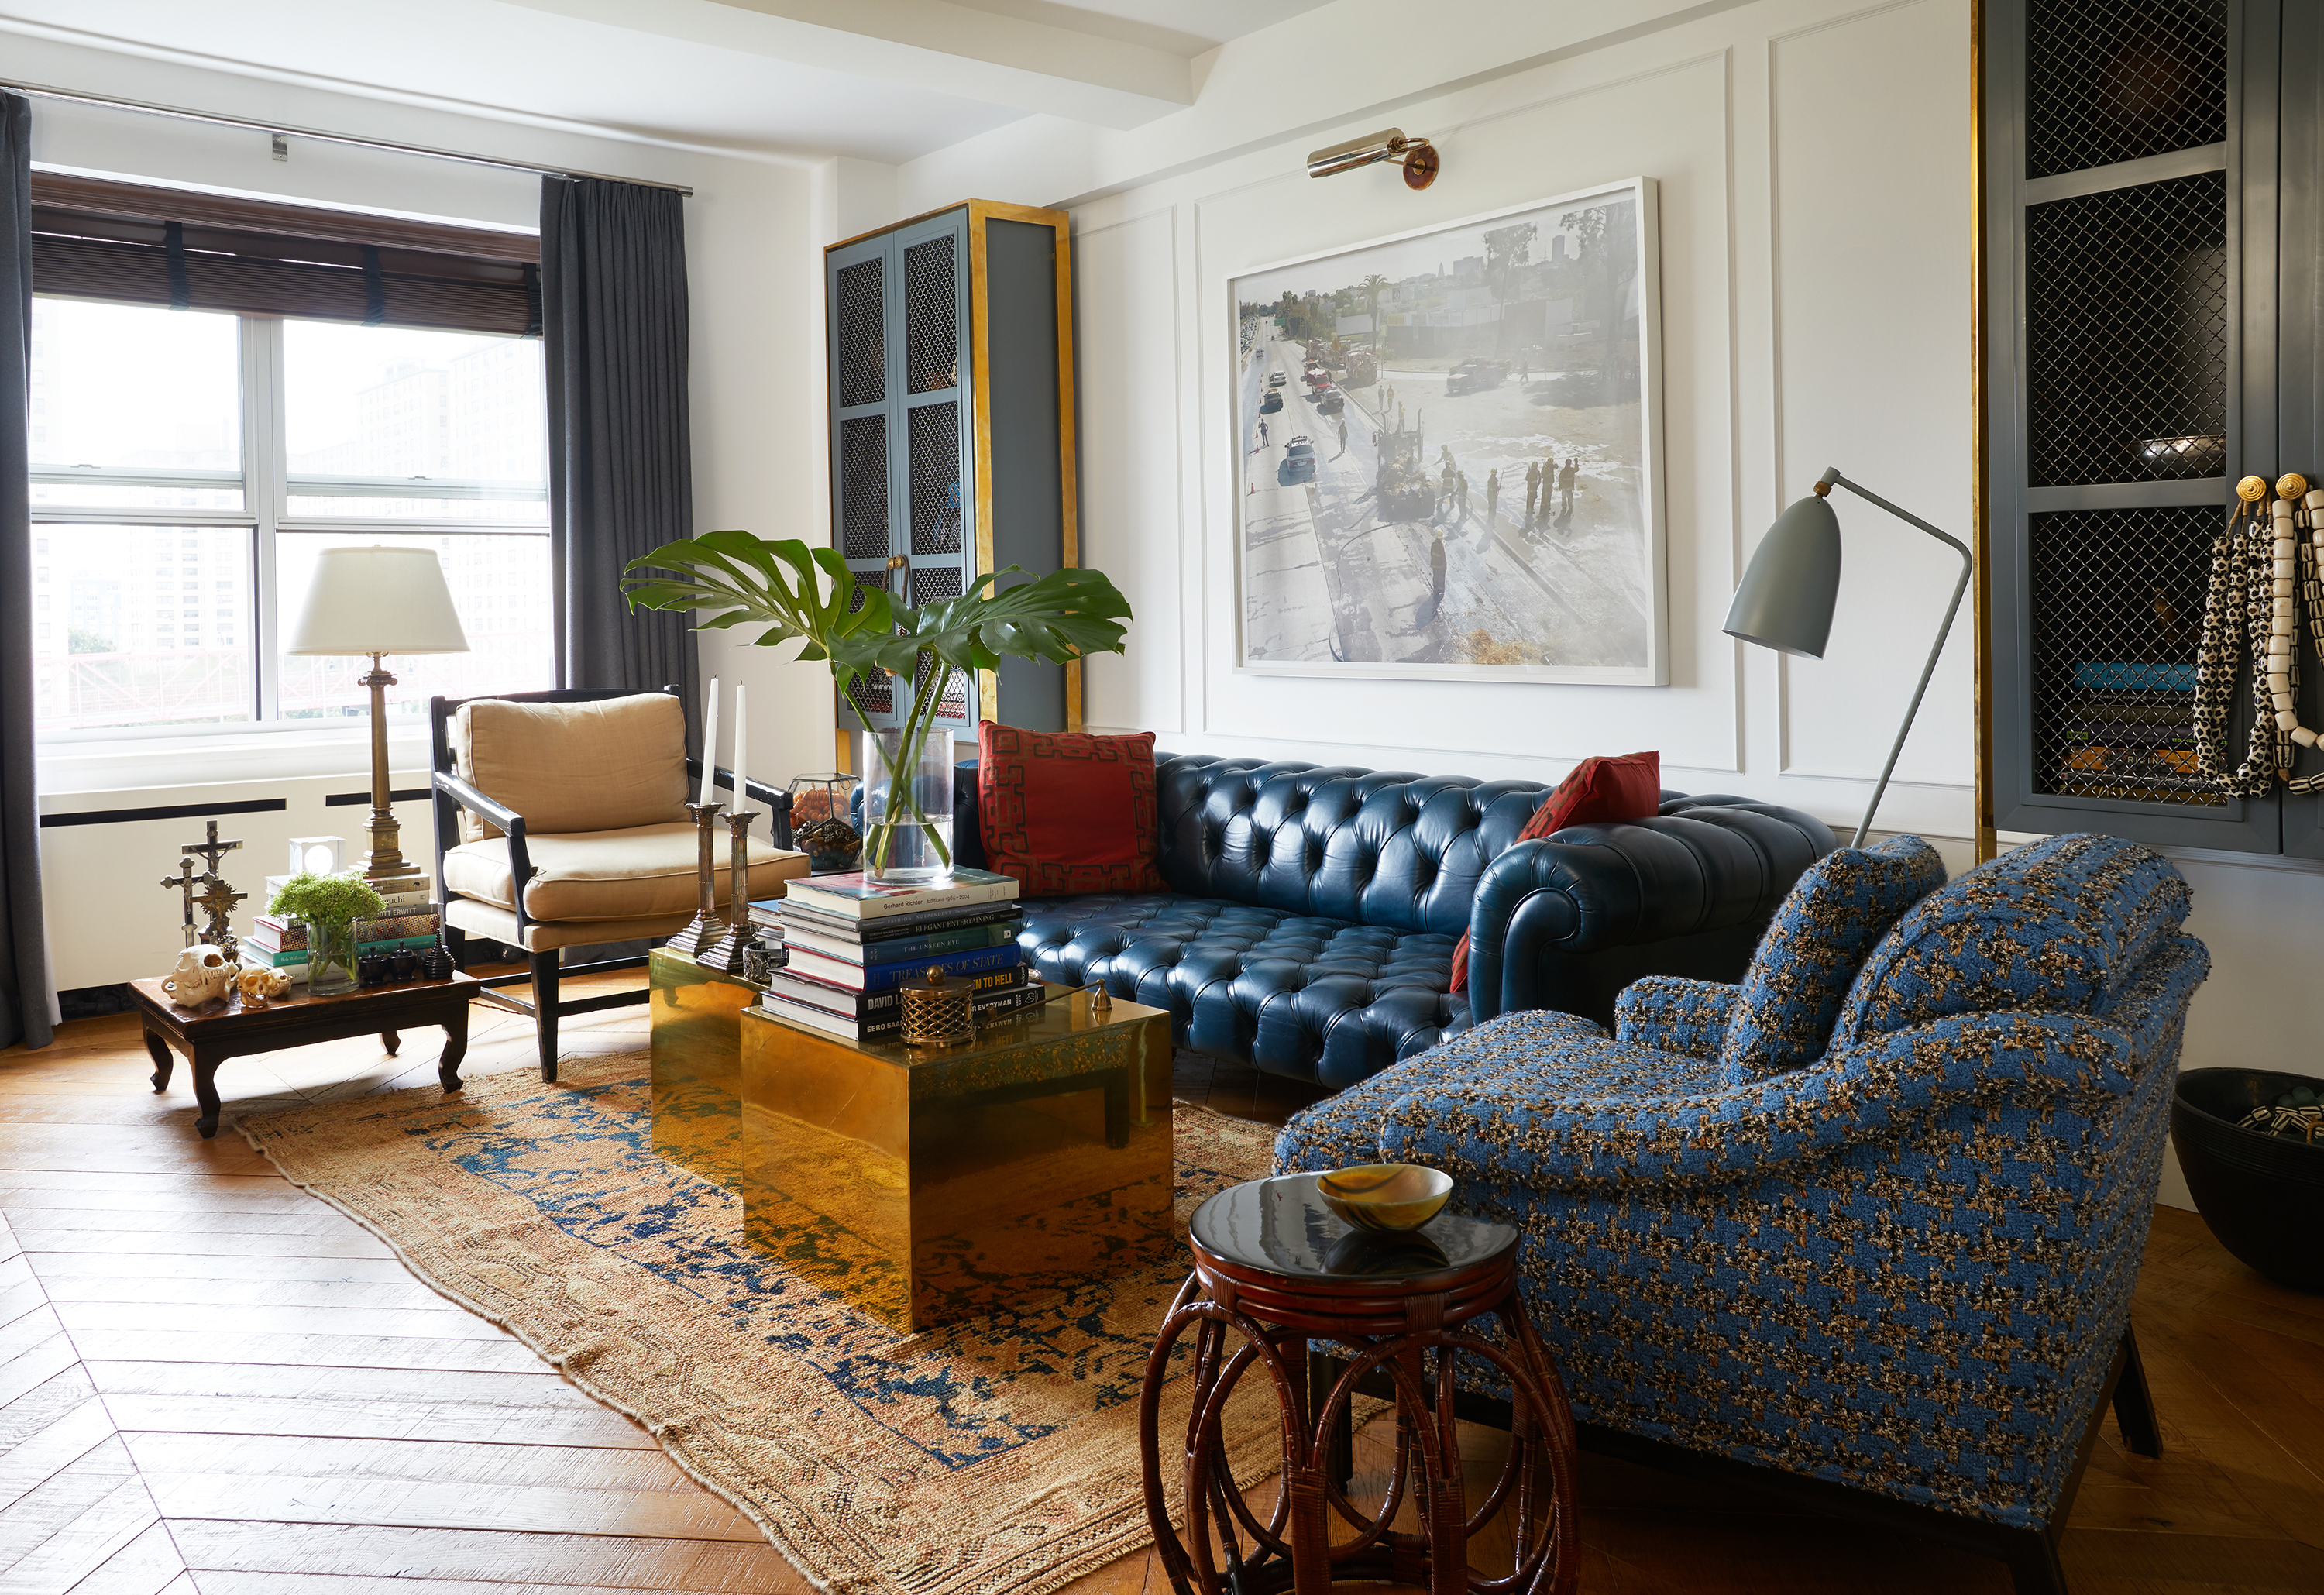 interesting interior design living room. The living room has a tufted blue sofa flanked by cabinets with brass  legs Inside interior designer Tim Campbell s debonair New York City